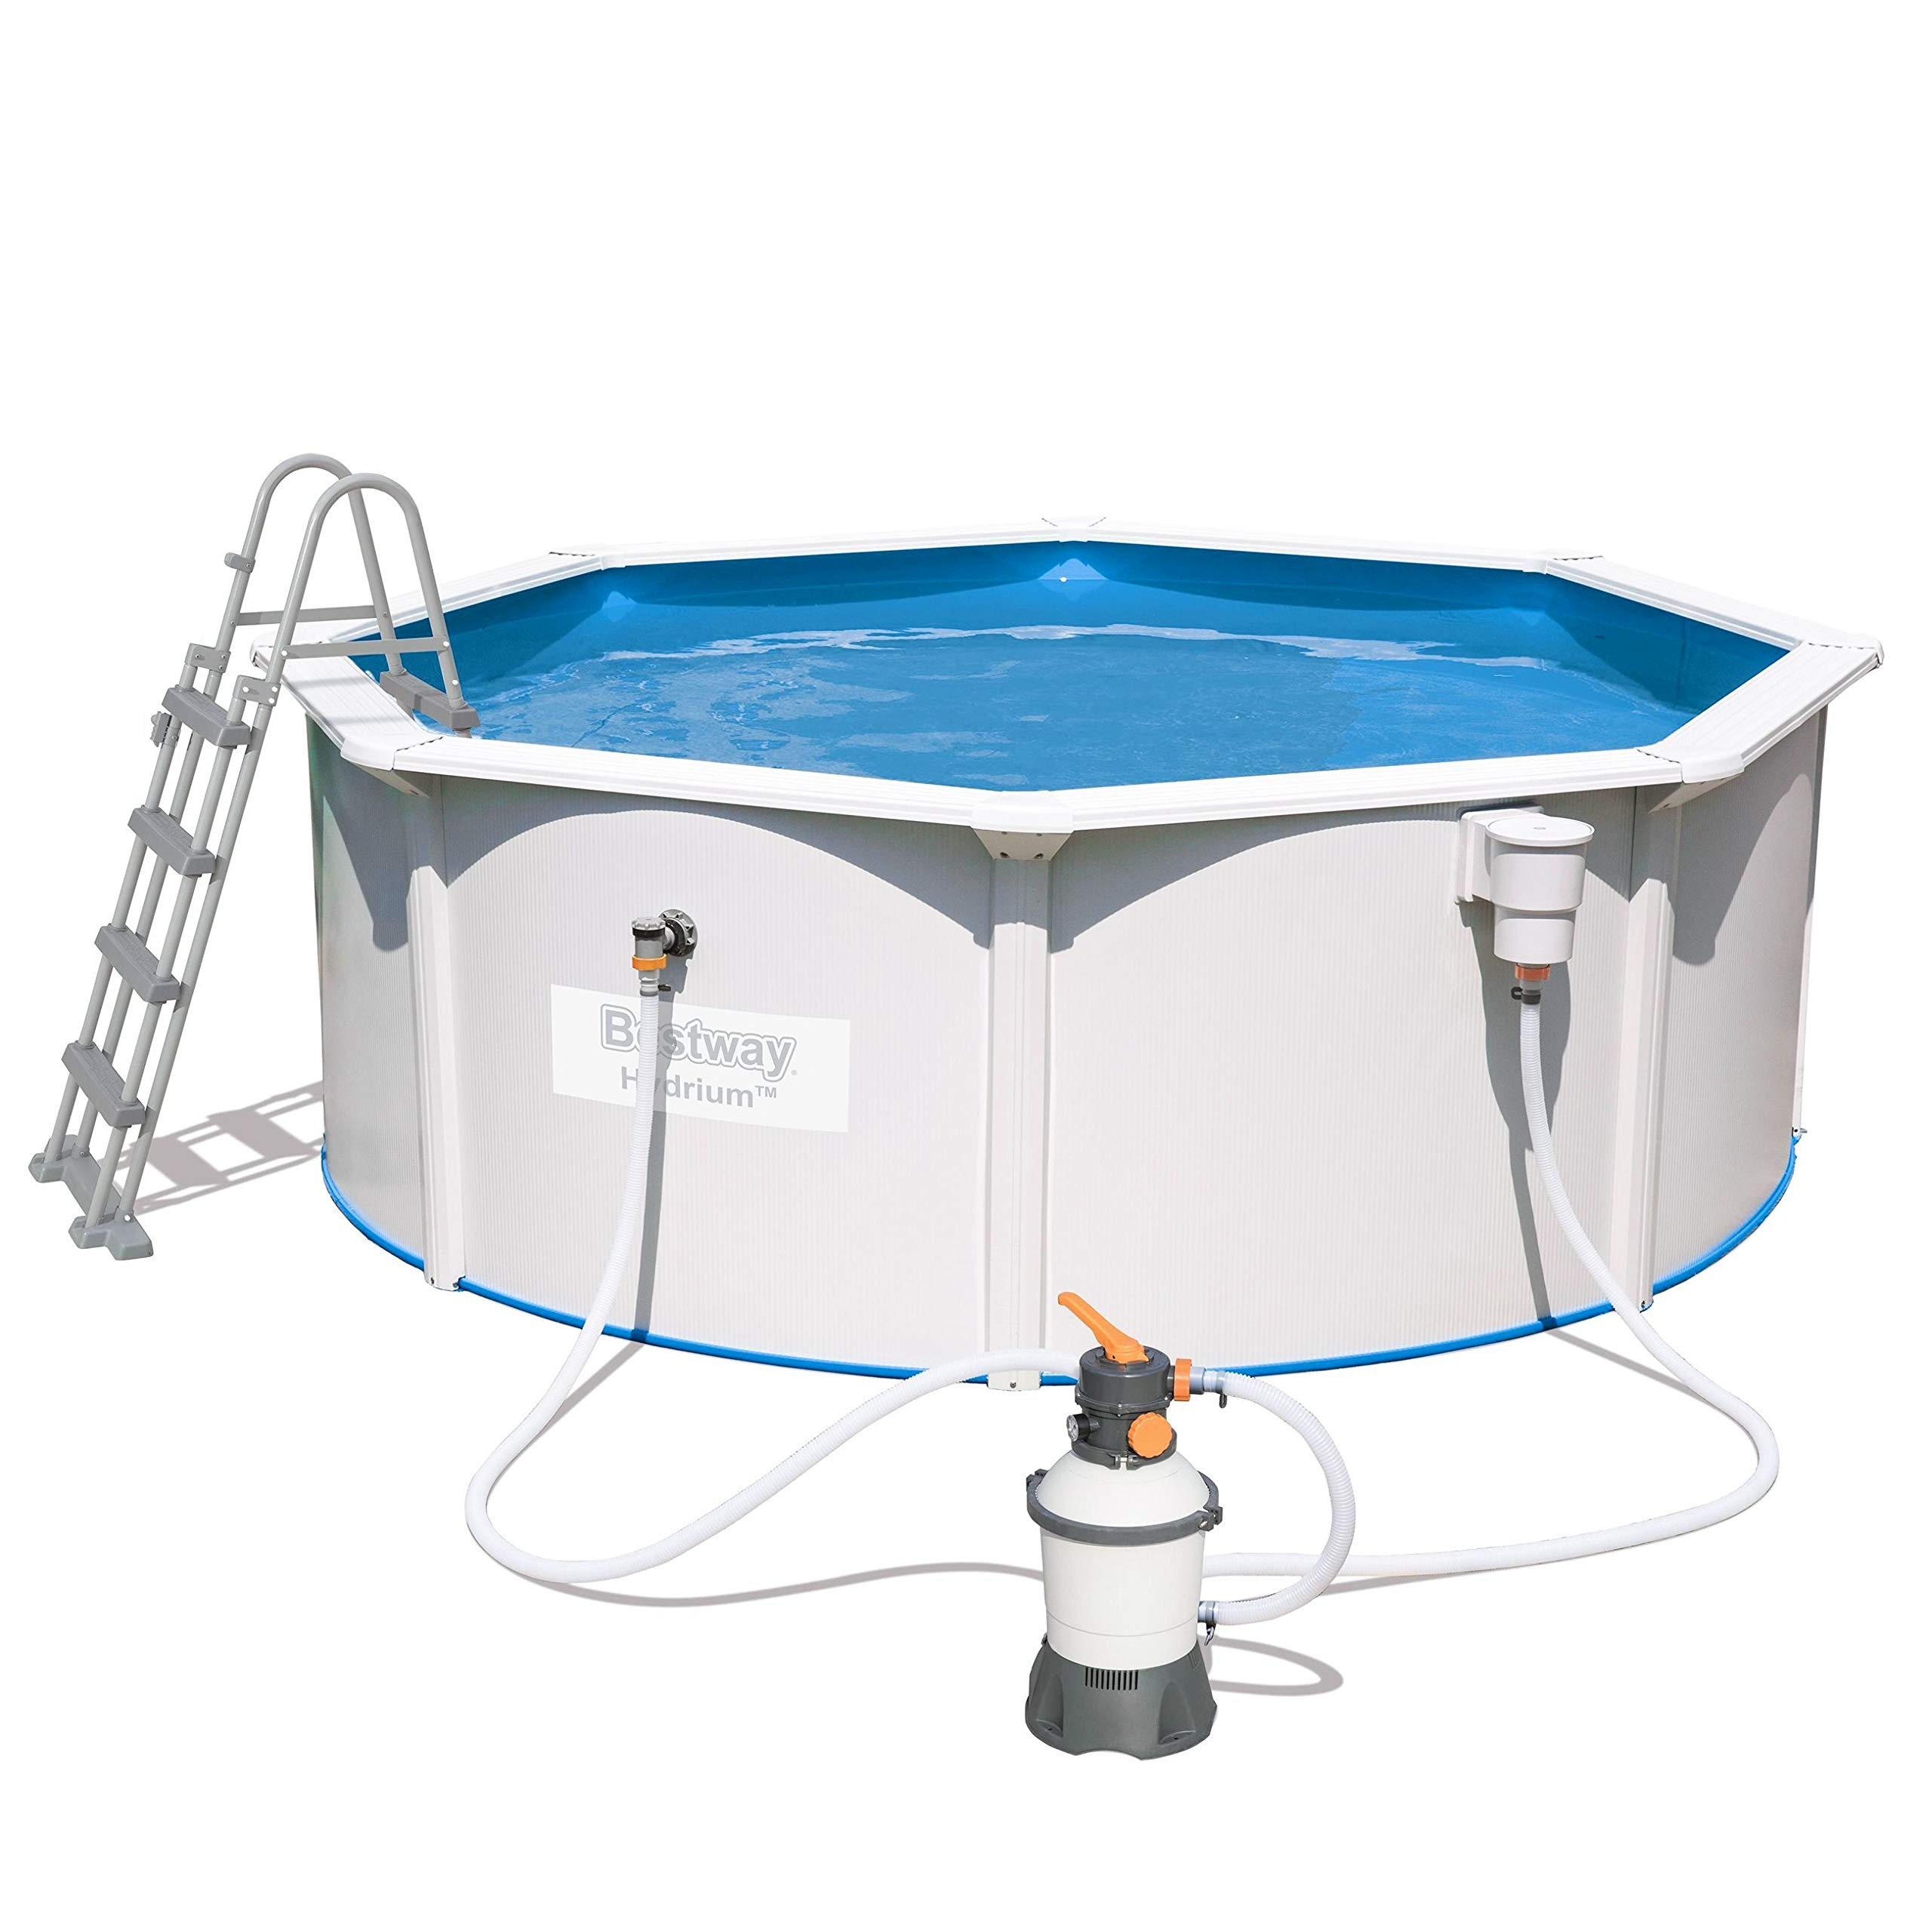 Bestway Hydrium Pool Set Piscina de Pared de Acero con Filtro de ...